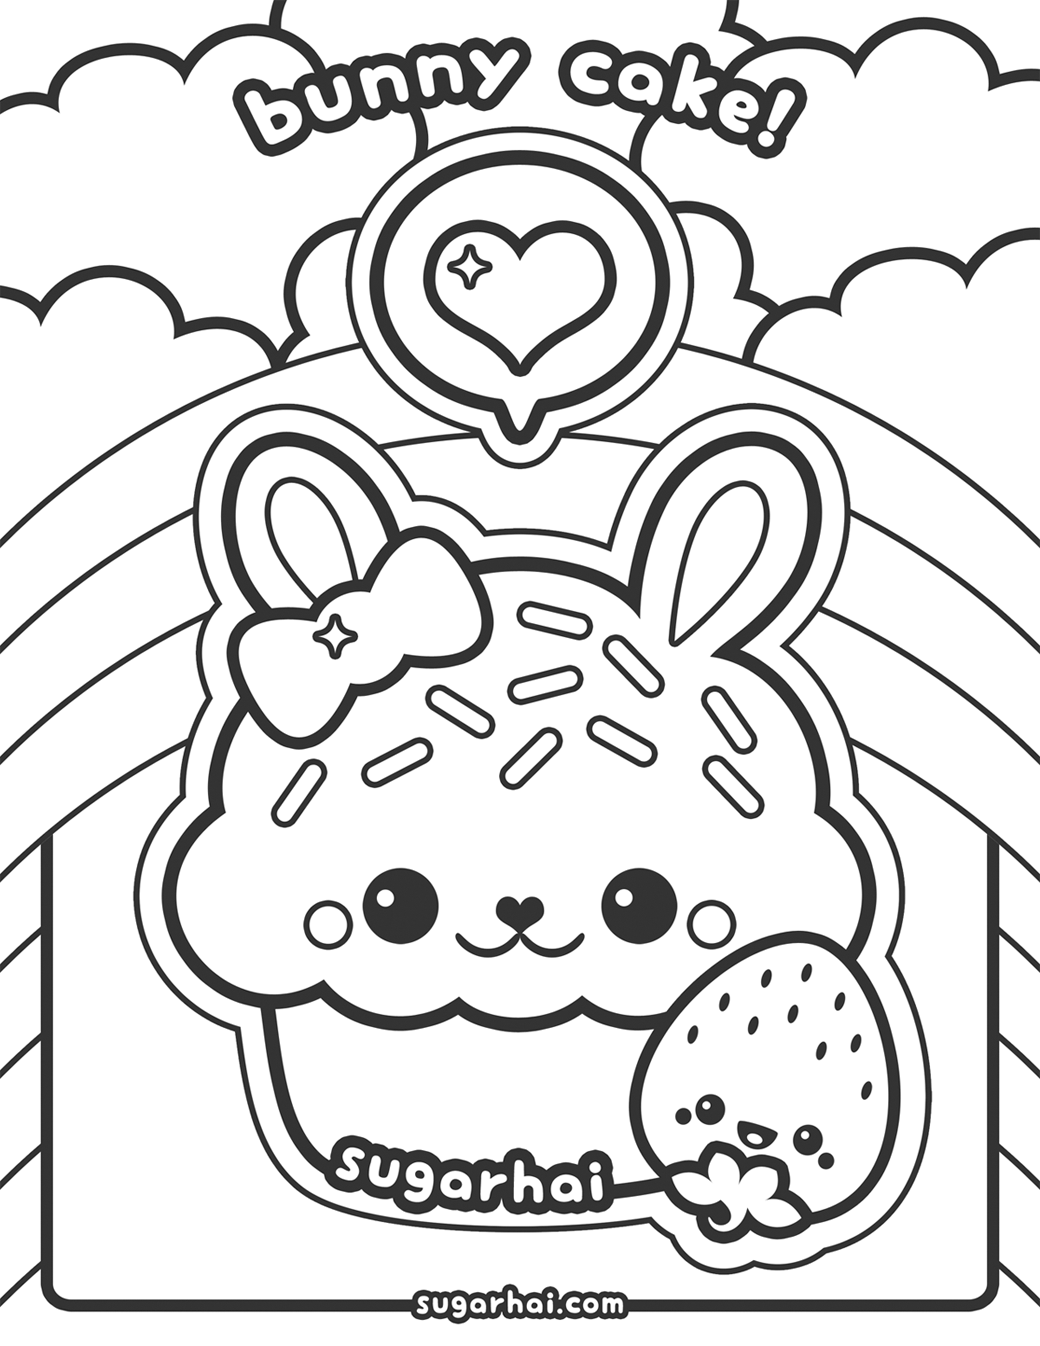 coloring cute food pictures cute food coloring pages coloring pages to download and pictures food cute coloring